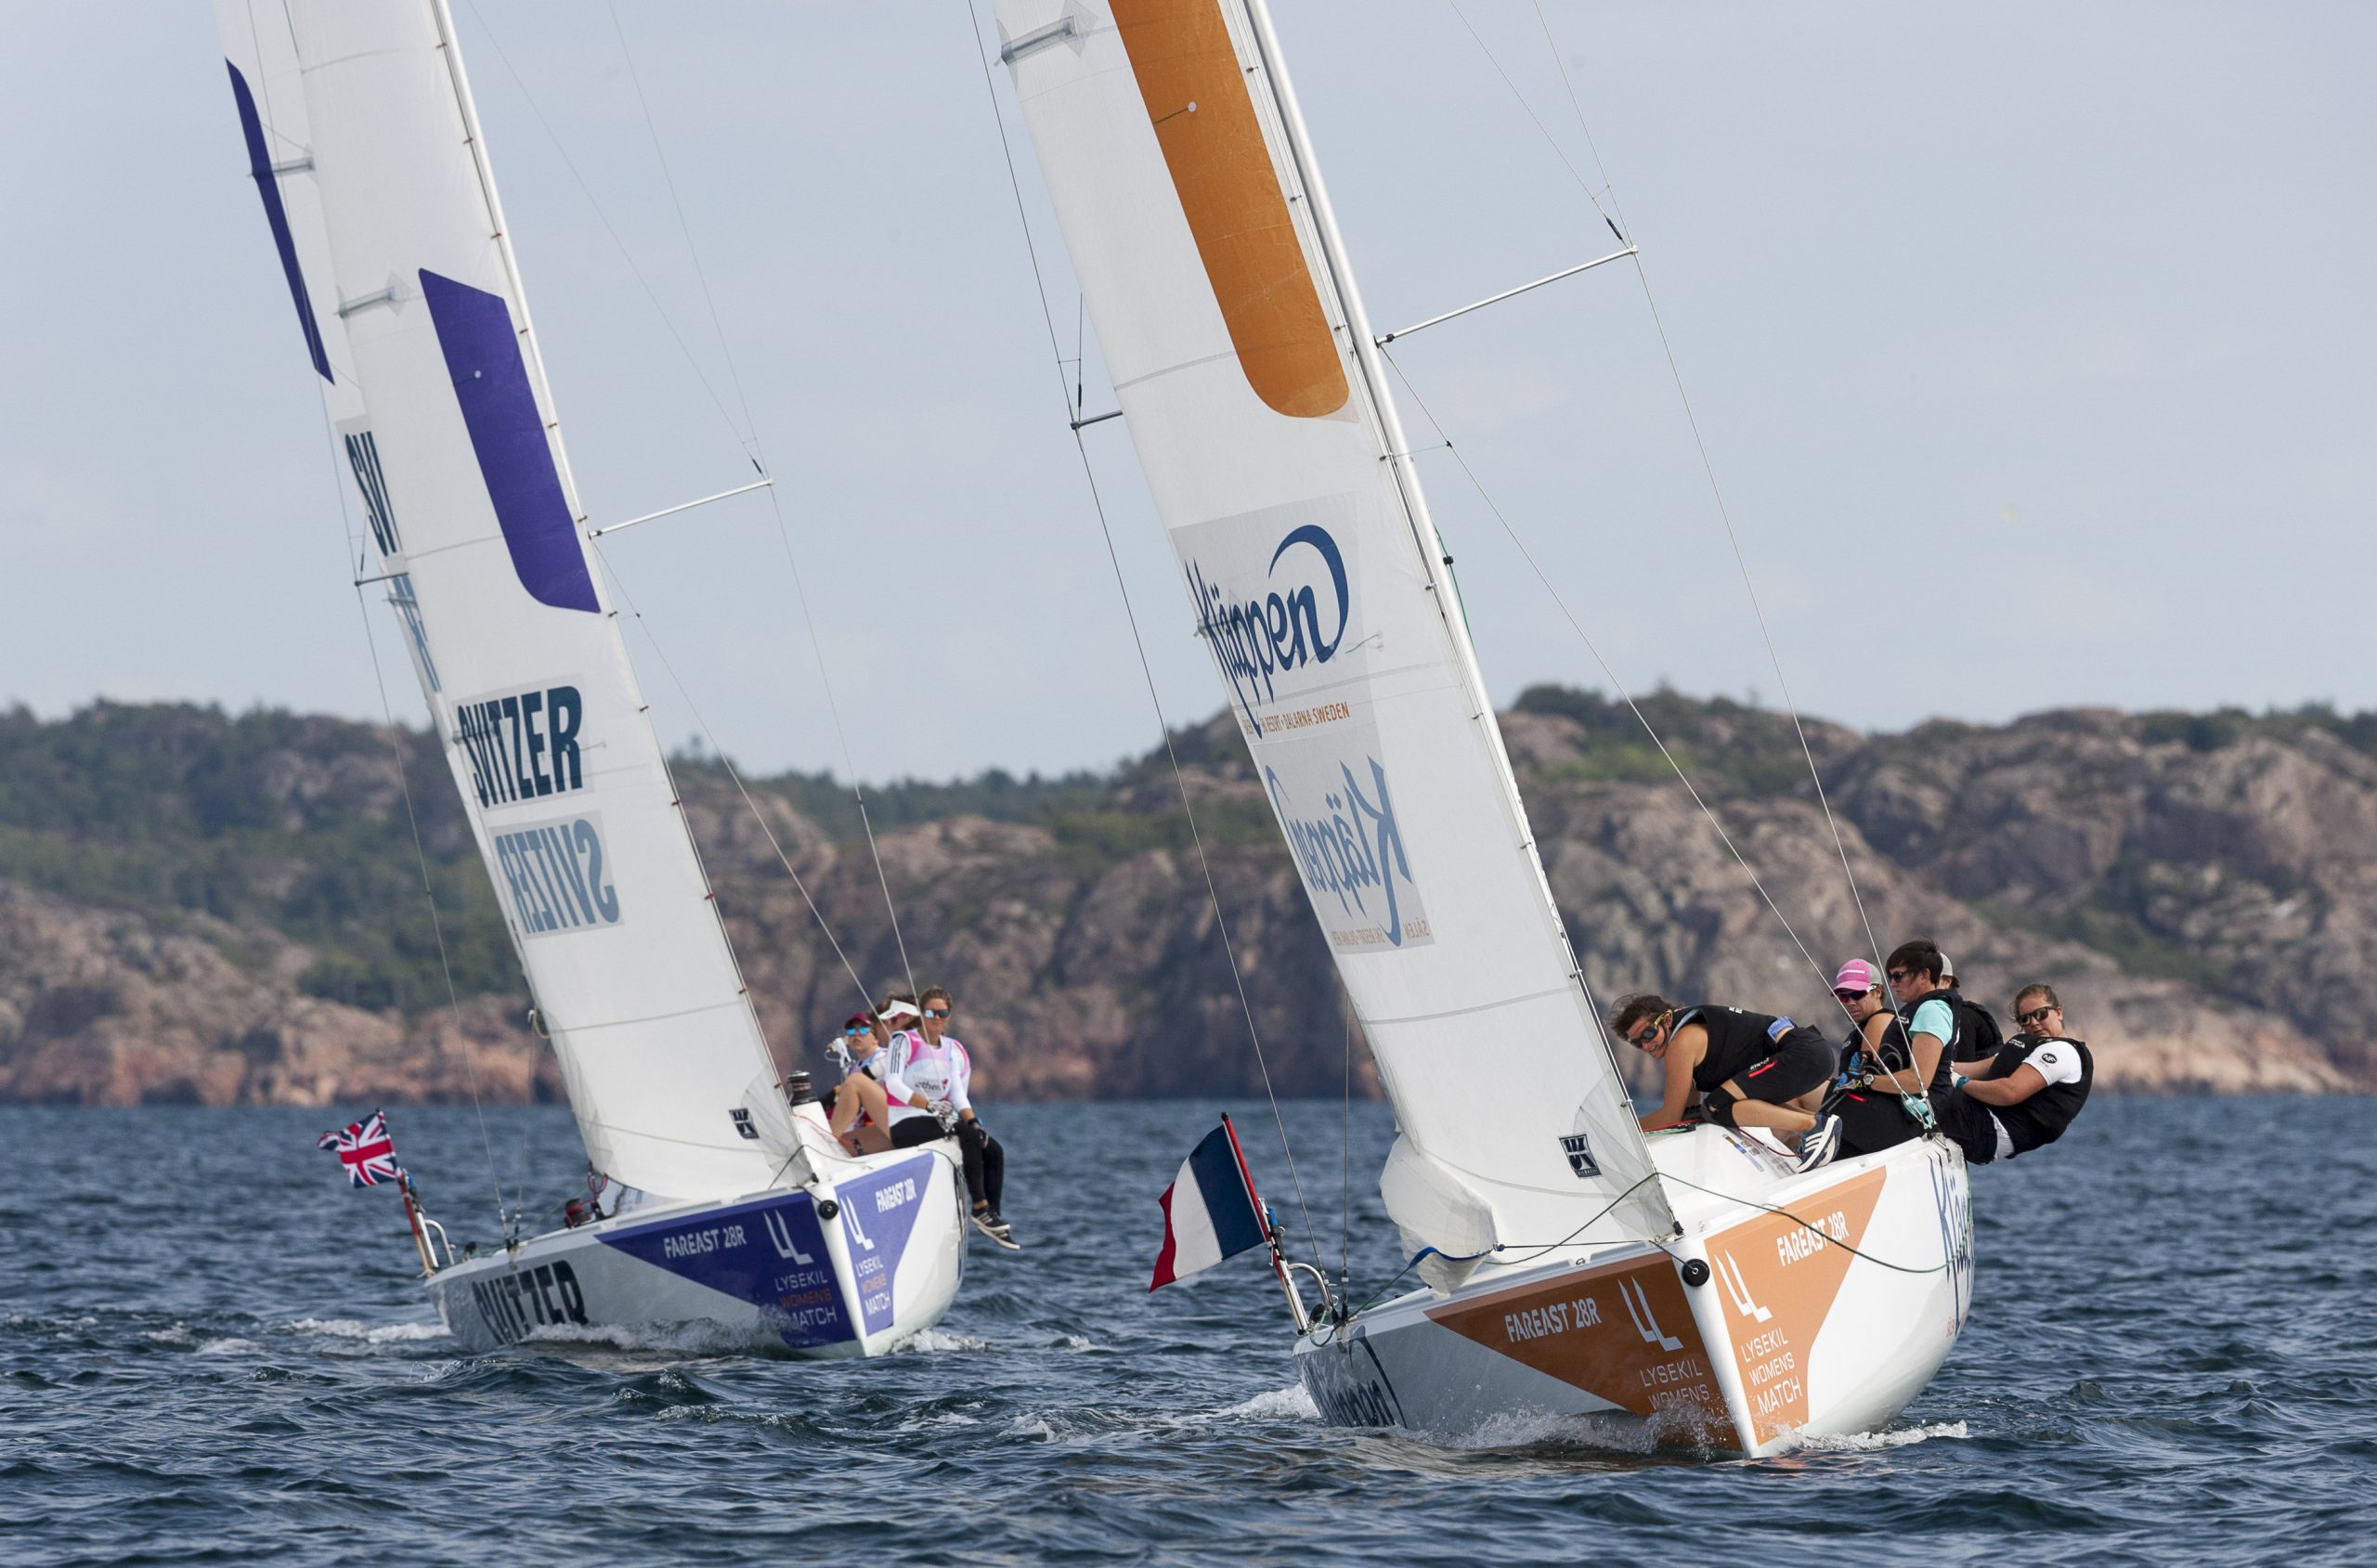 Match in Pink by Normandy Elite Team in the lead after day one in Lysekil. Photo: Dan Ljungsvik.